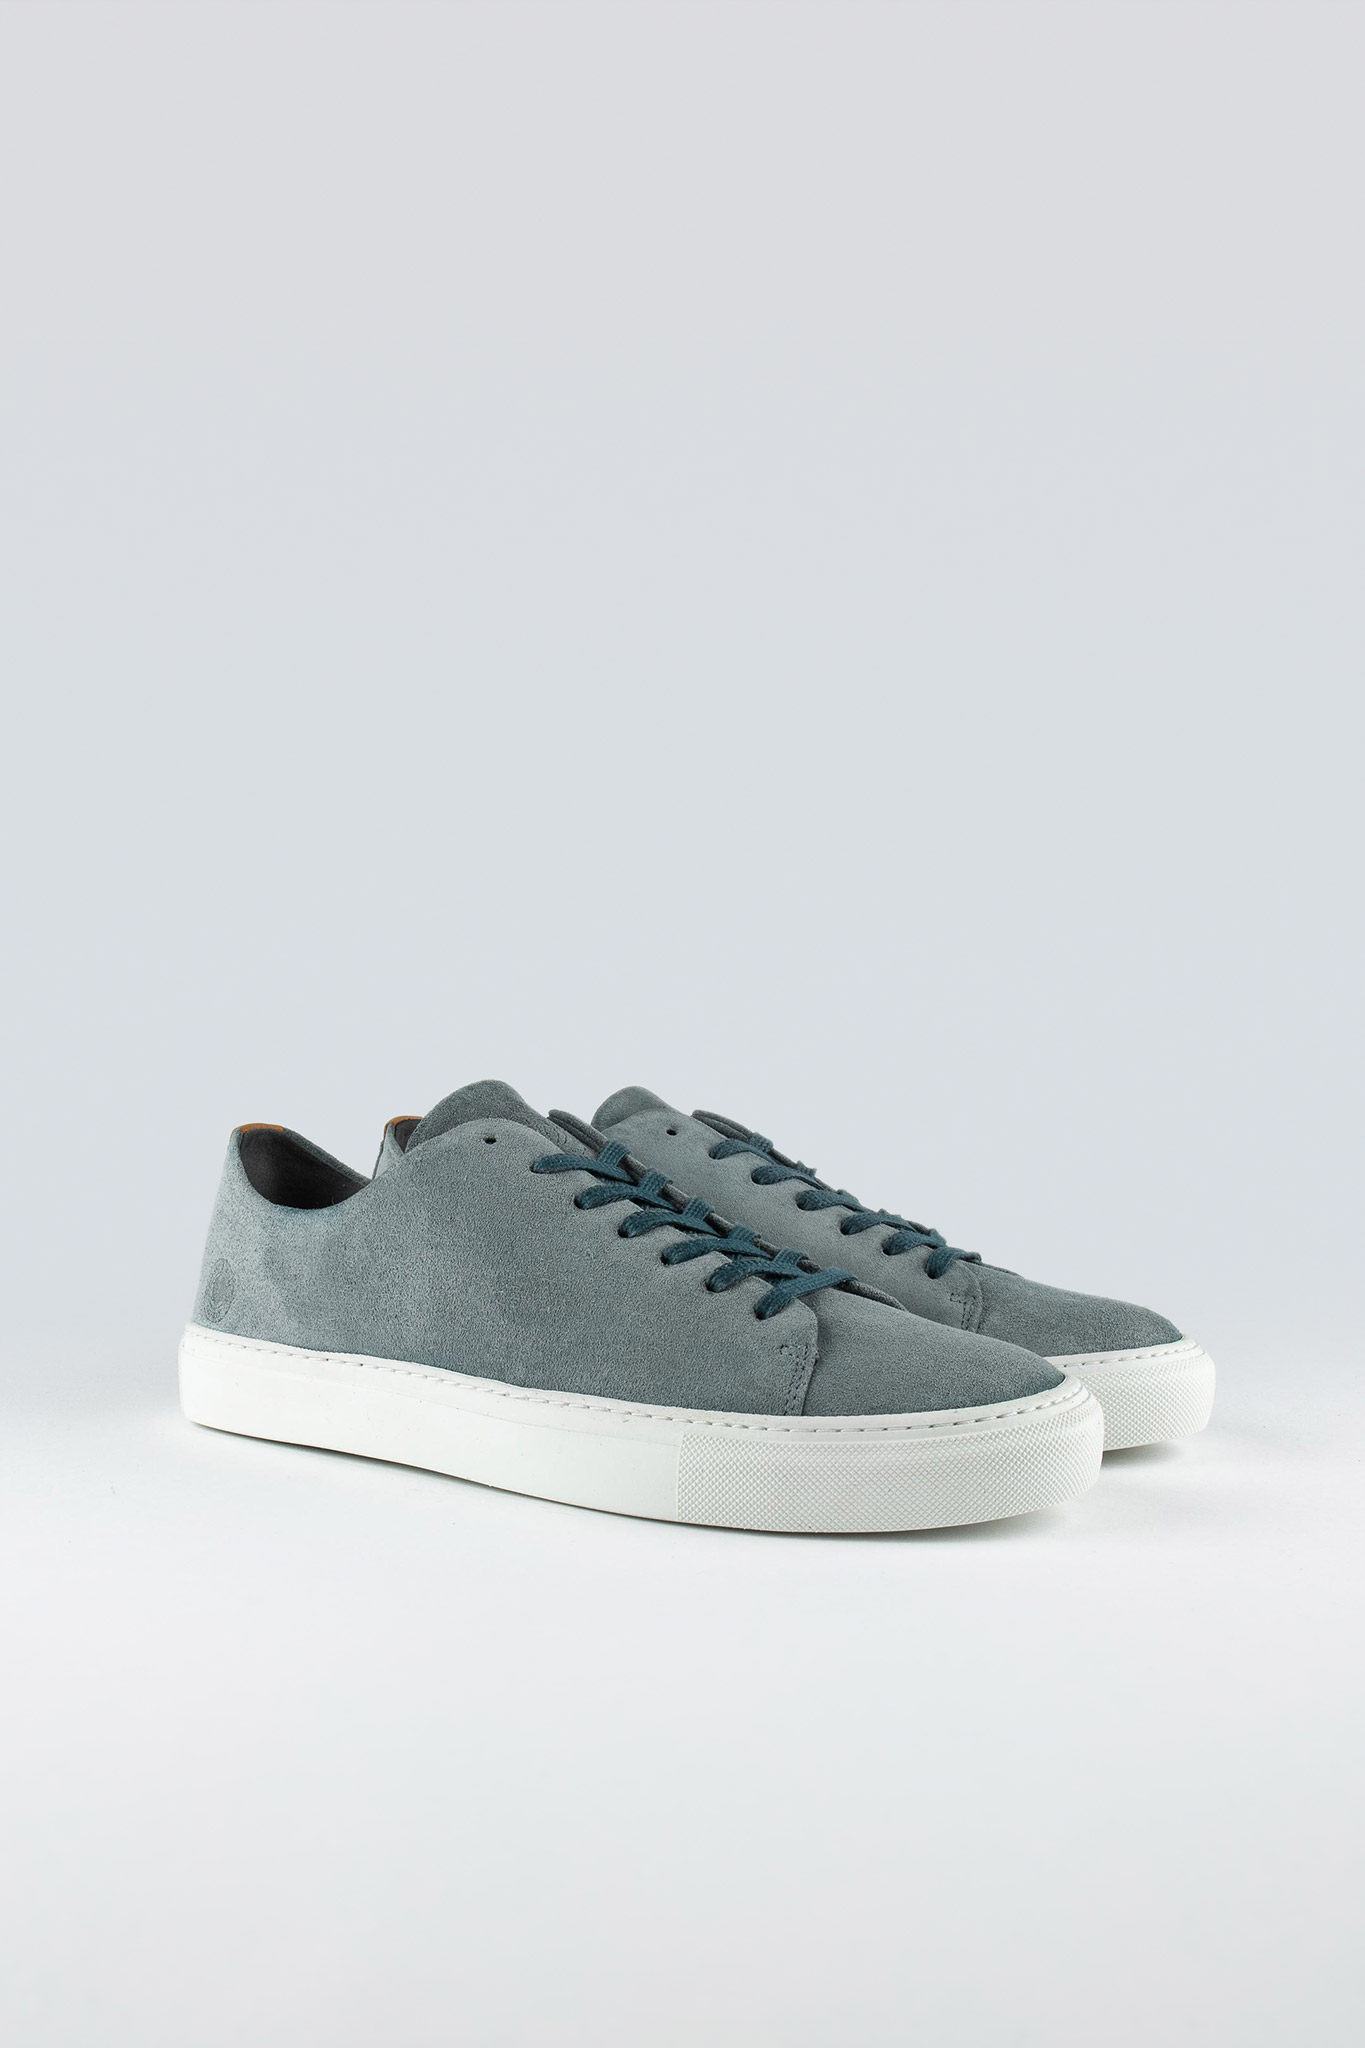 Less Suede Stone